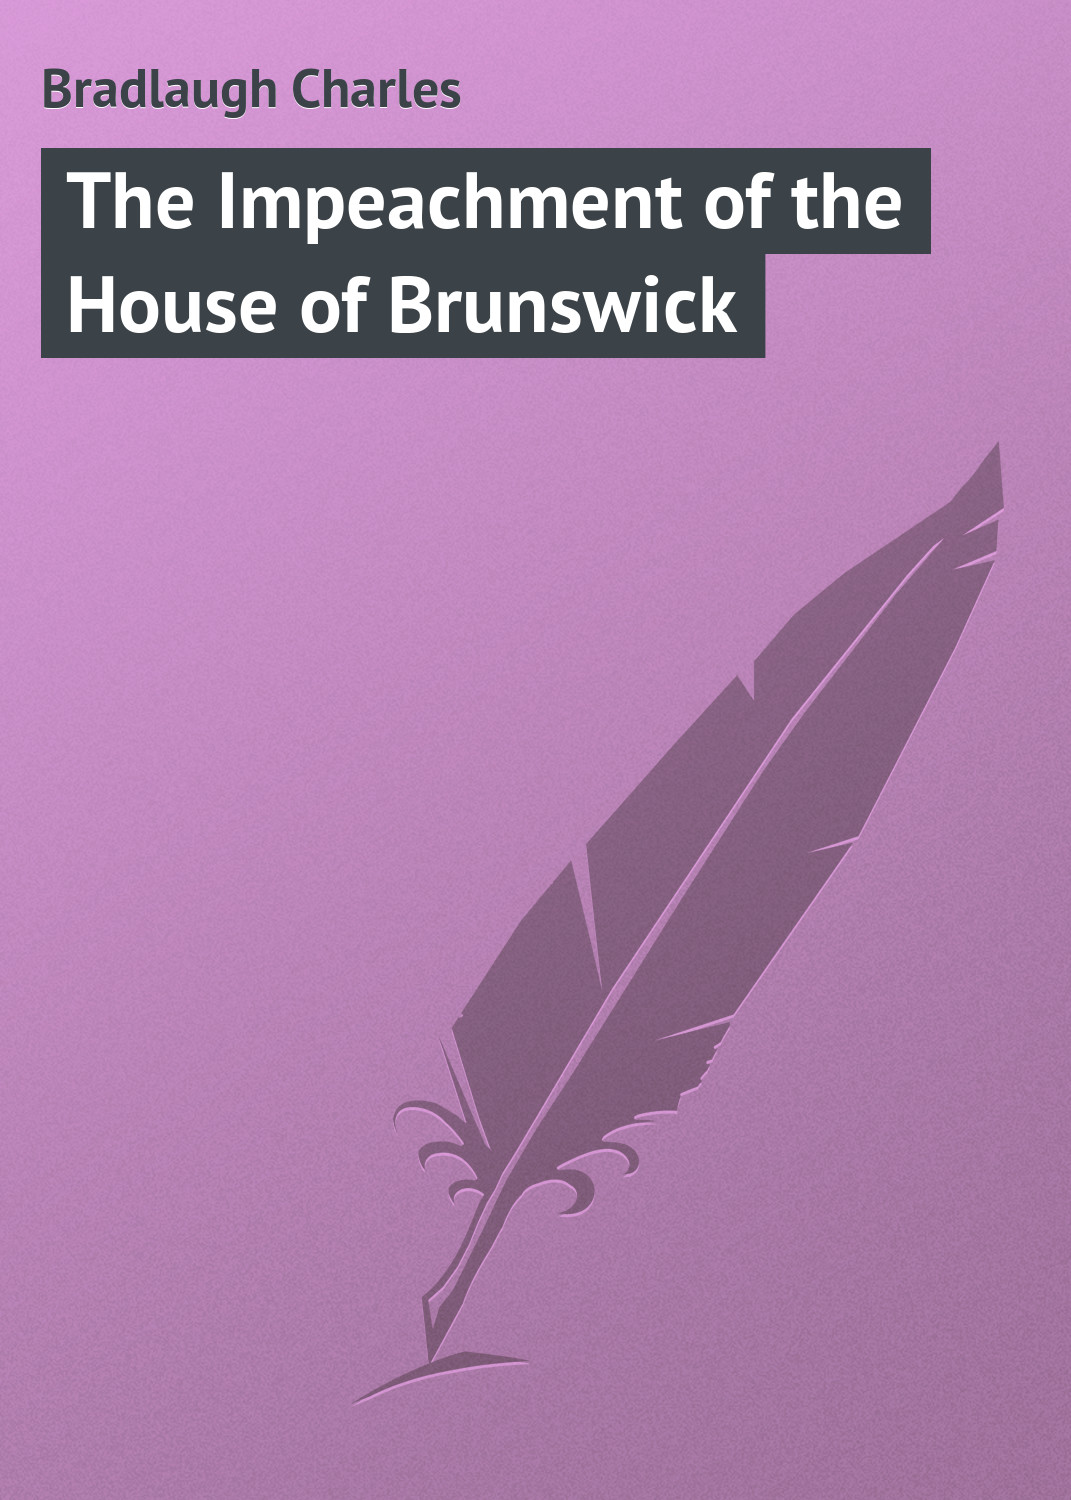 Bradlaugh Charles The Impeachment of the House of Brunswick bradlaugh charles the impeachment of the house of brunswick